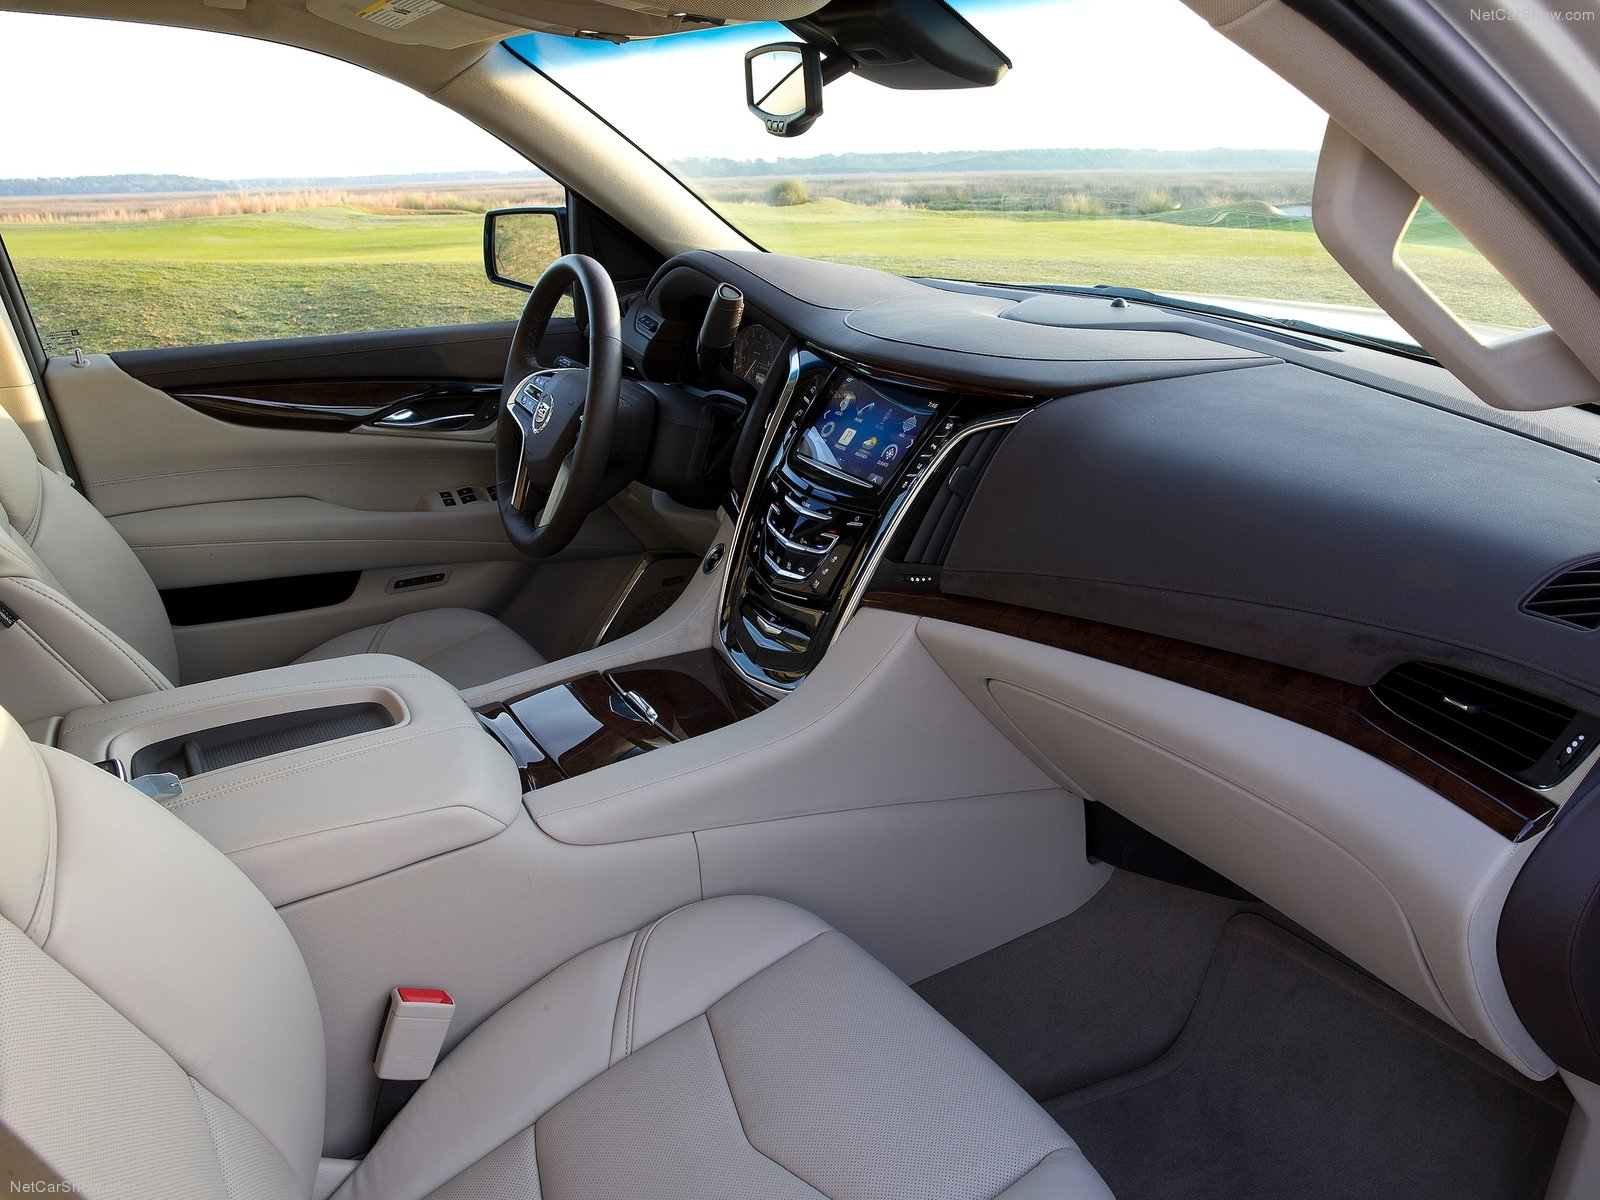 cadillac escalade colors with Suv on Auto Zone Logo additionally The New Car For 2019 2020 Cadillac Escalade Interior Dashboard together with 2018 Chevrolet Volt Changes besides 2018 Cadillac Ats V further 2019 Toyota Rav4.